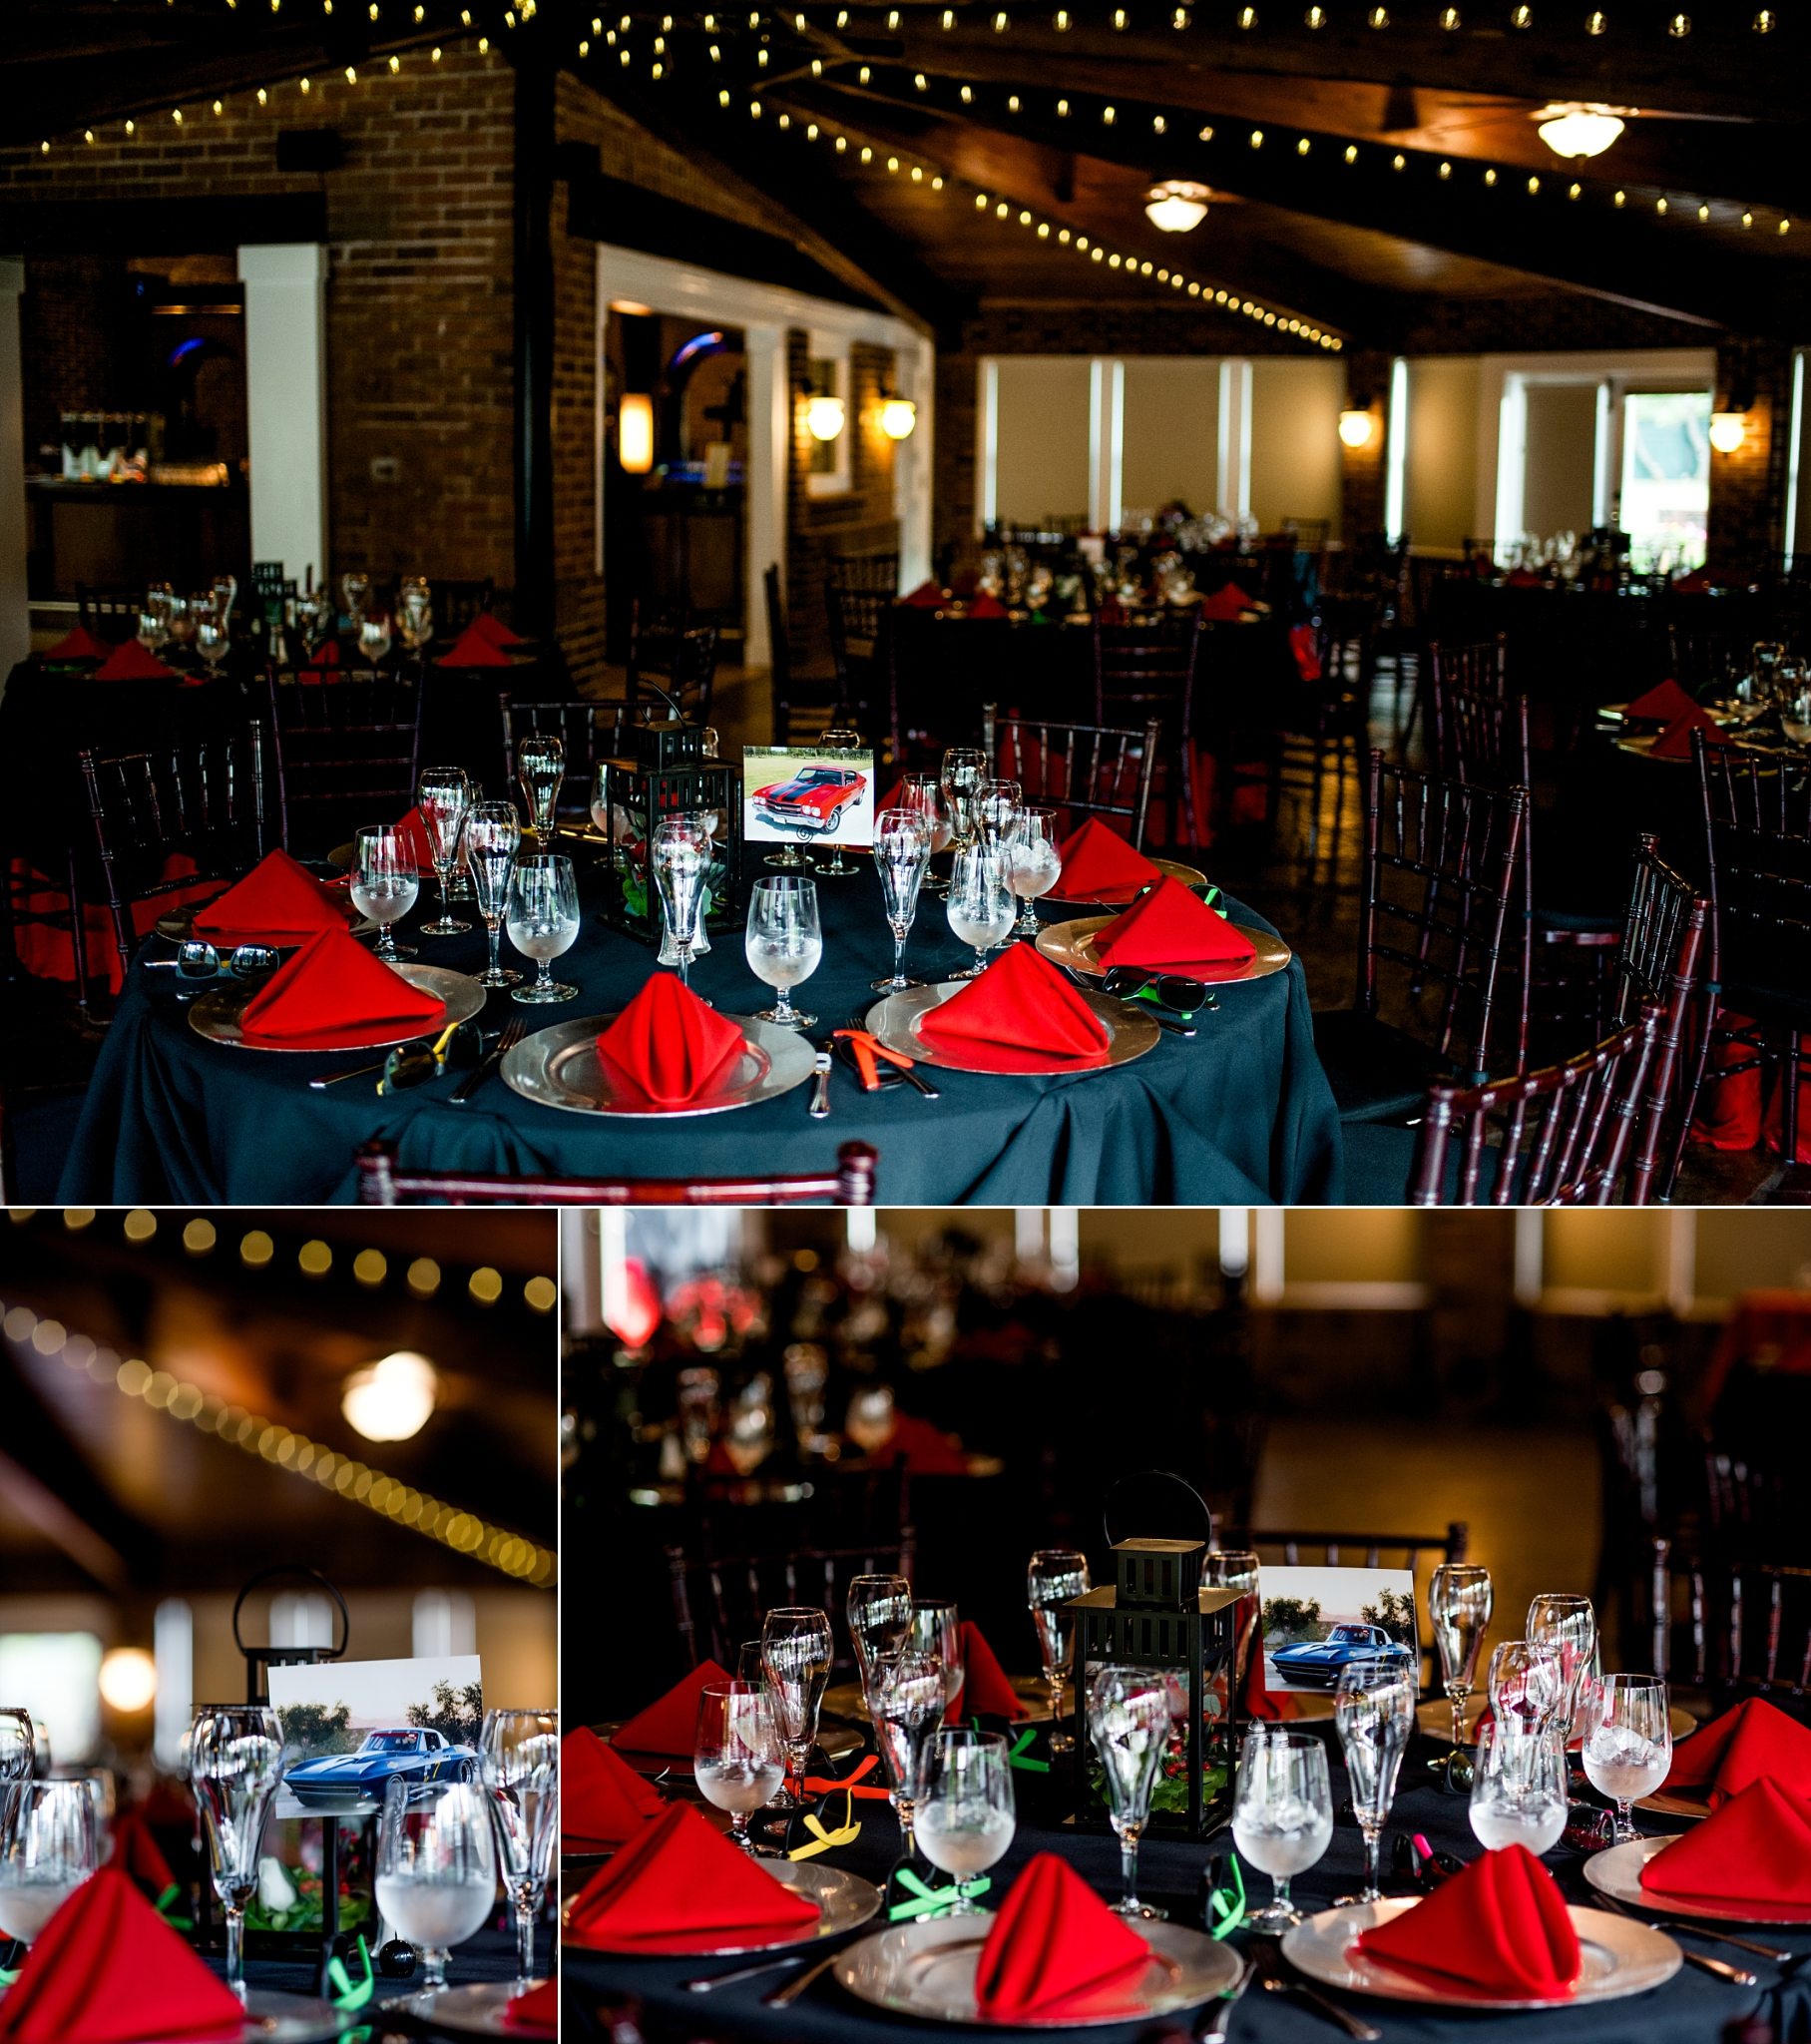 Lionsgate Event Center Wedding_0021.jpg